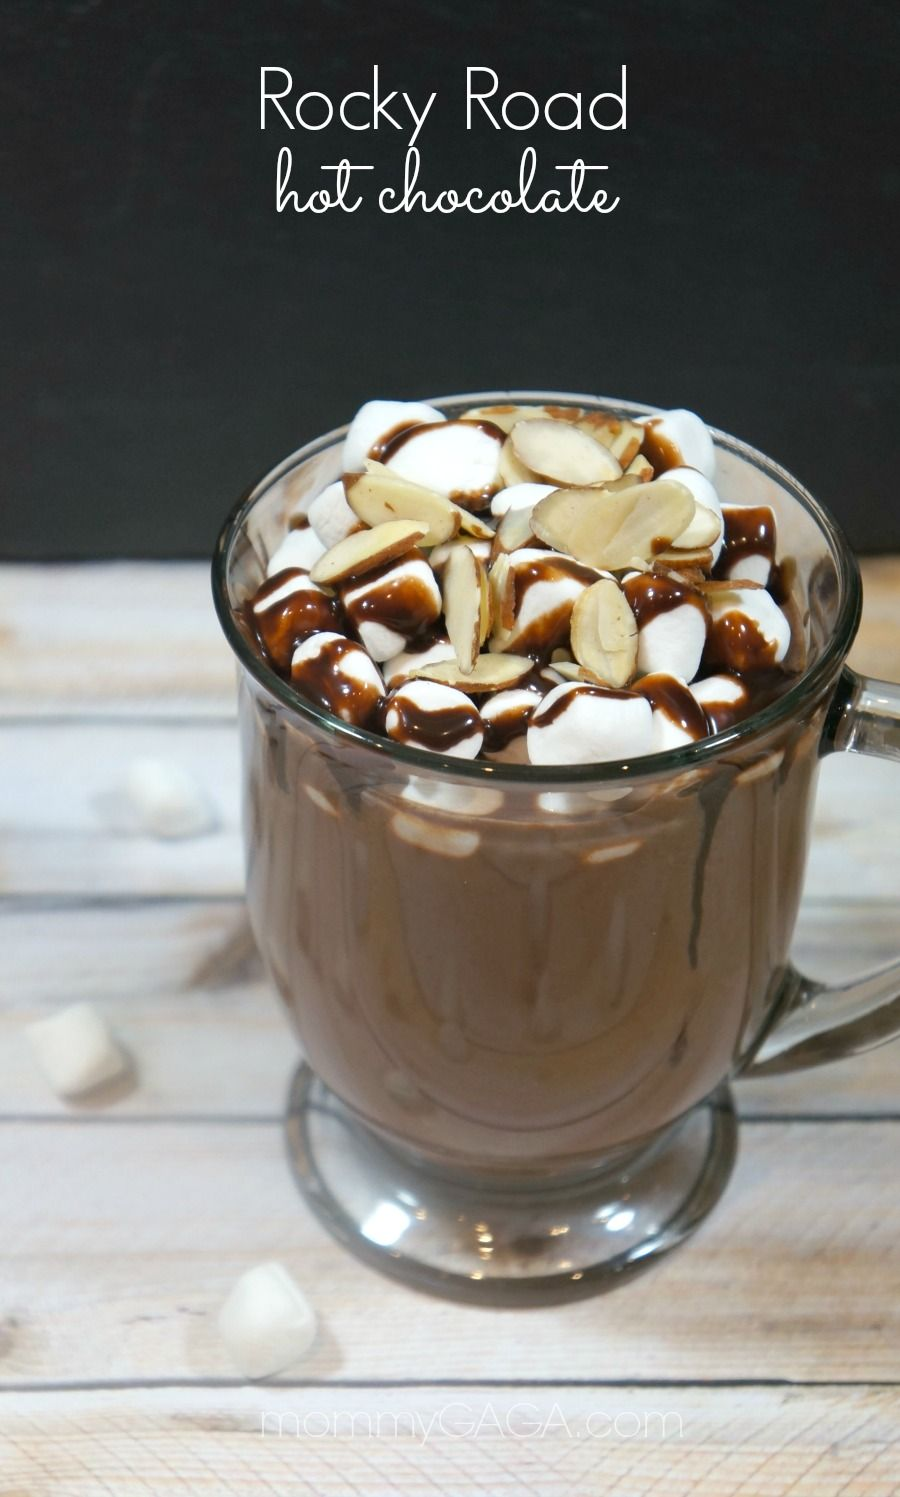 Warm Up With This Amazing Rocky Road Gourmet Hot Chocolate Recipe ...